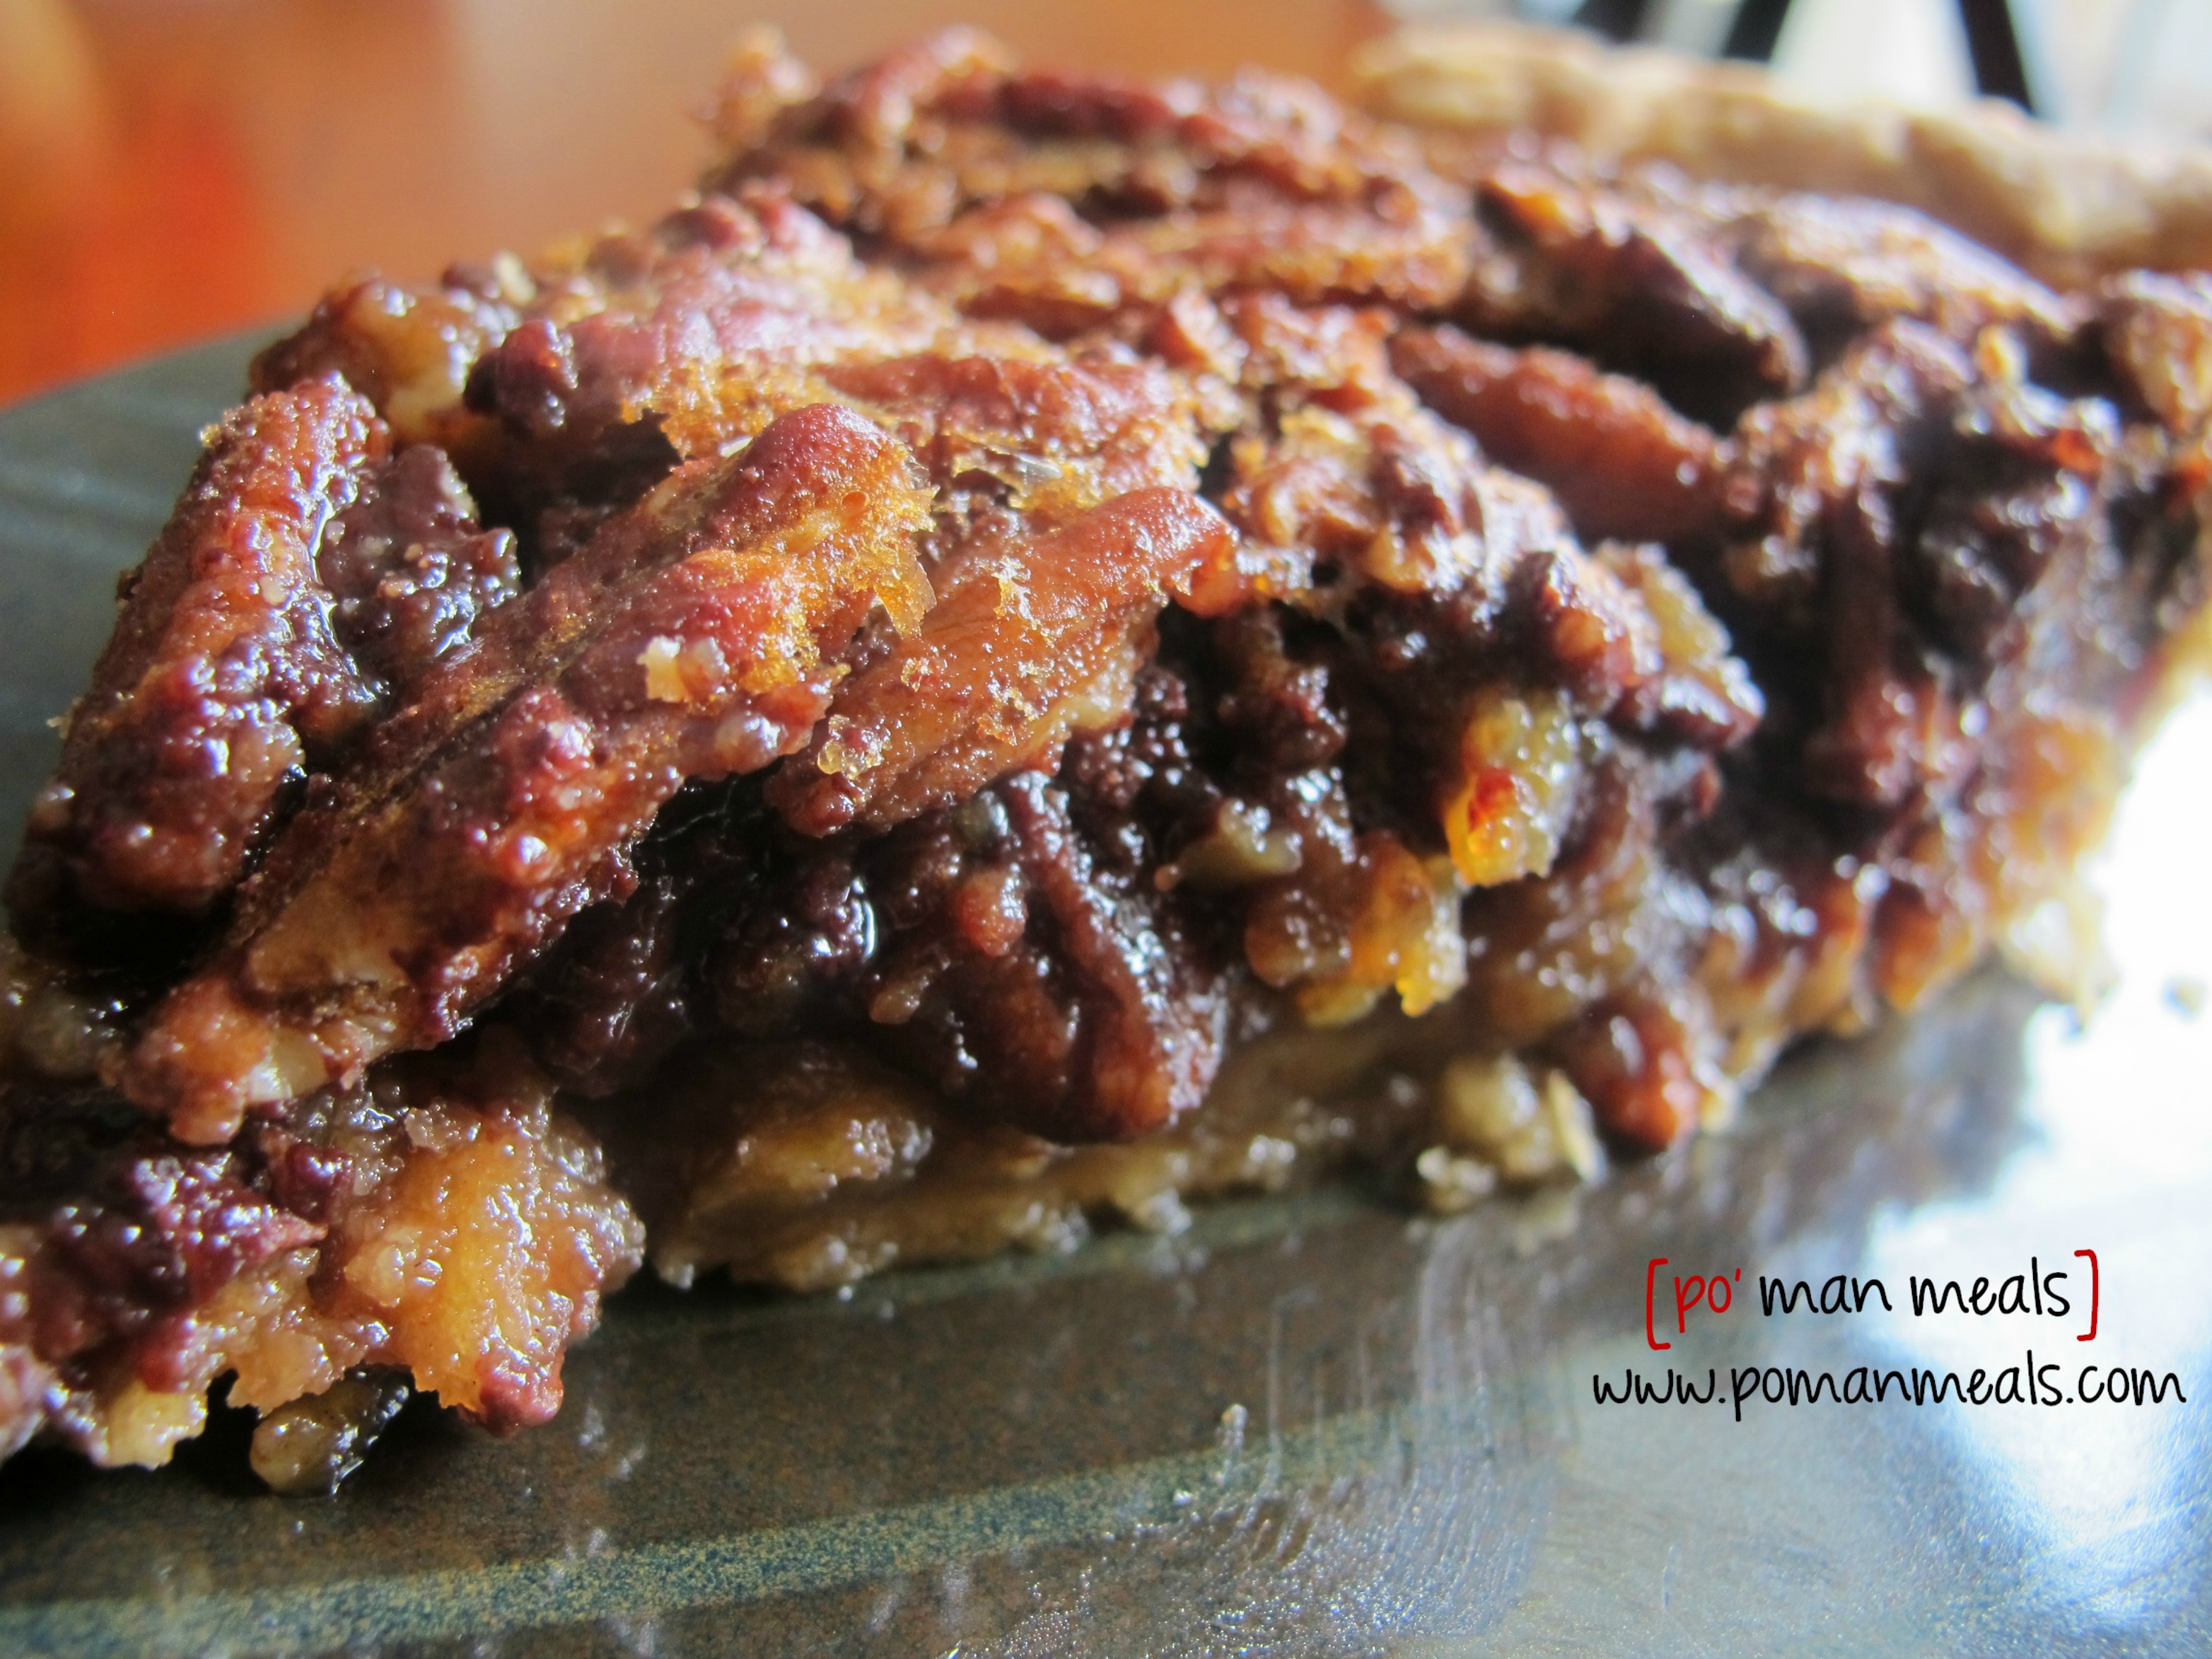 po' man meals - pecan and chocolate chip pie